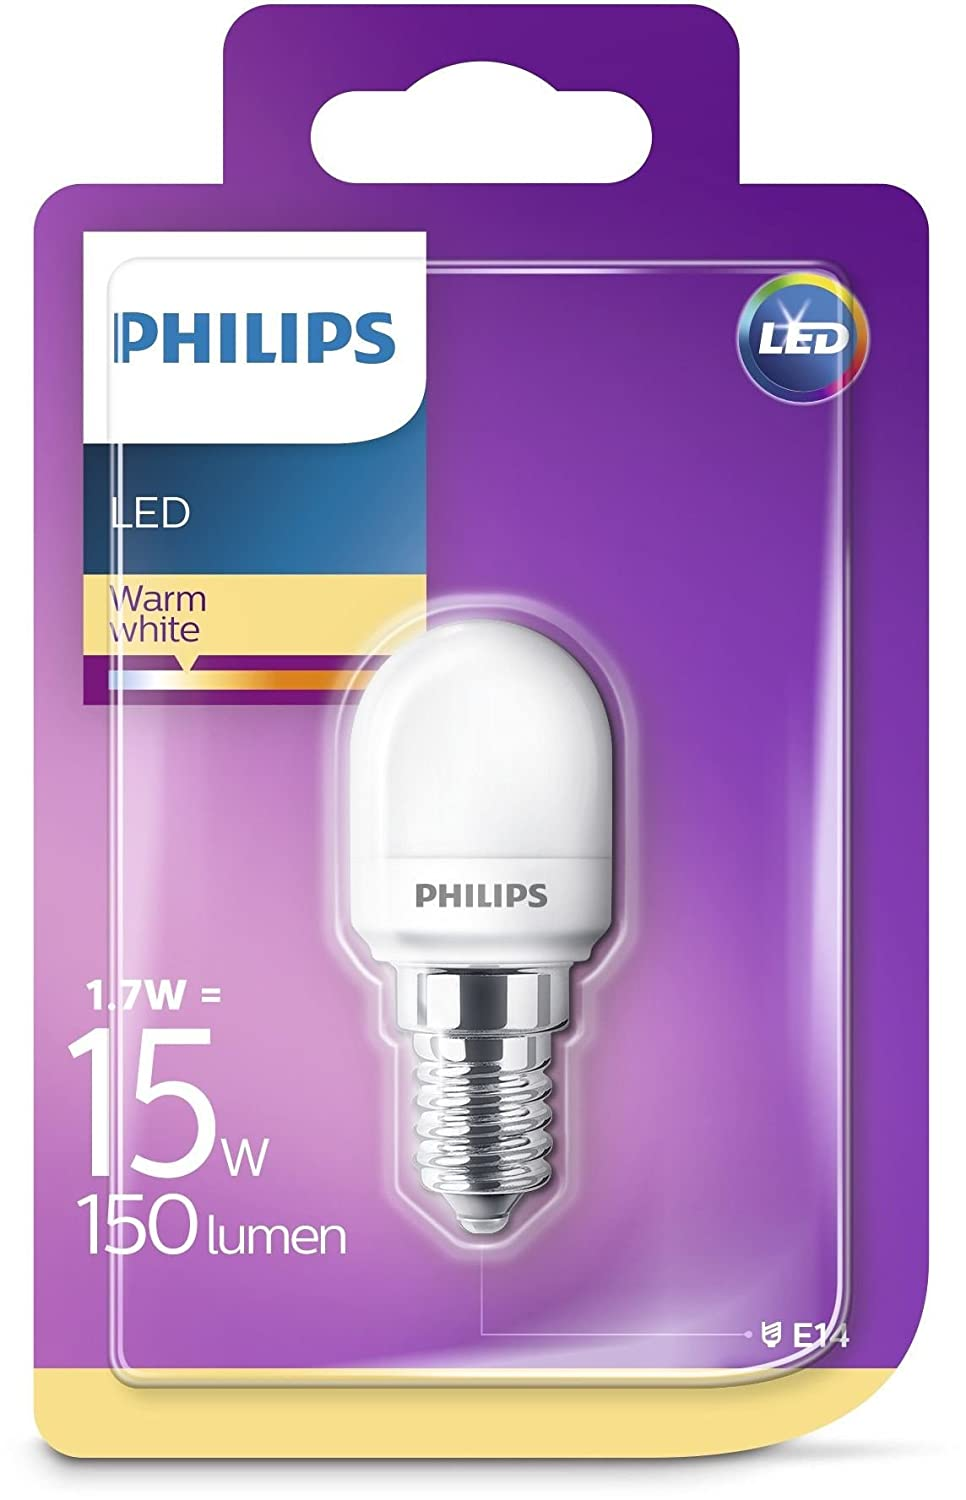 Philips Capsula No regulable - Bombilla LED E14, equivalente a 15 W, color blanco cálido